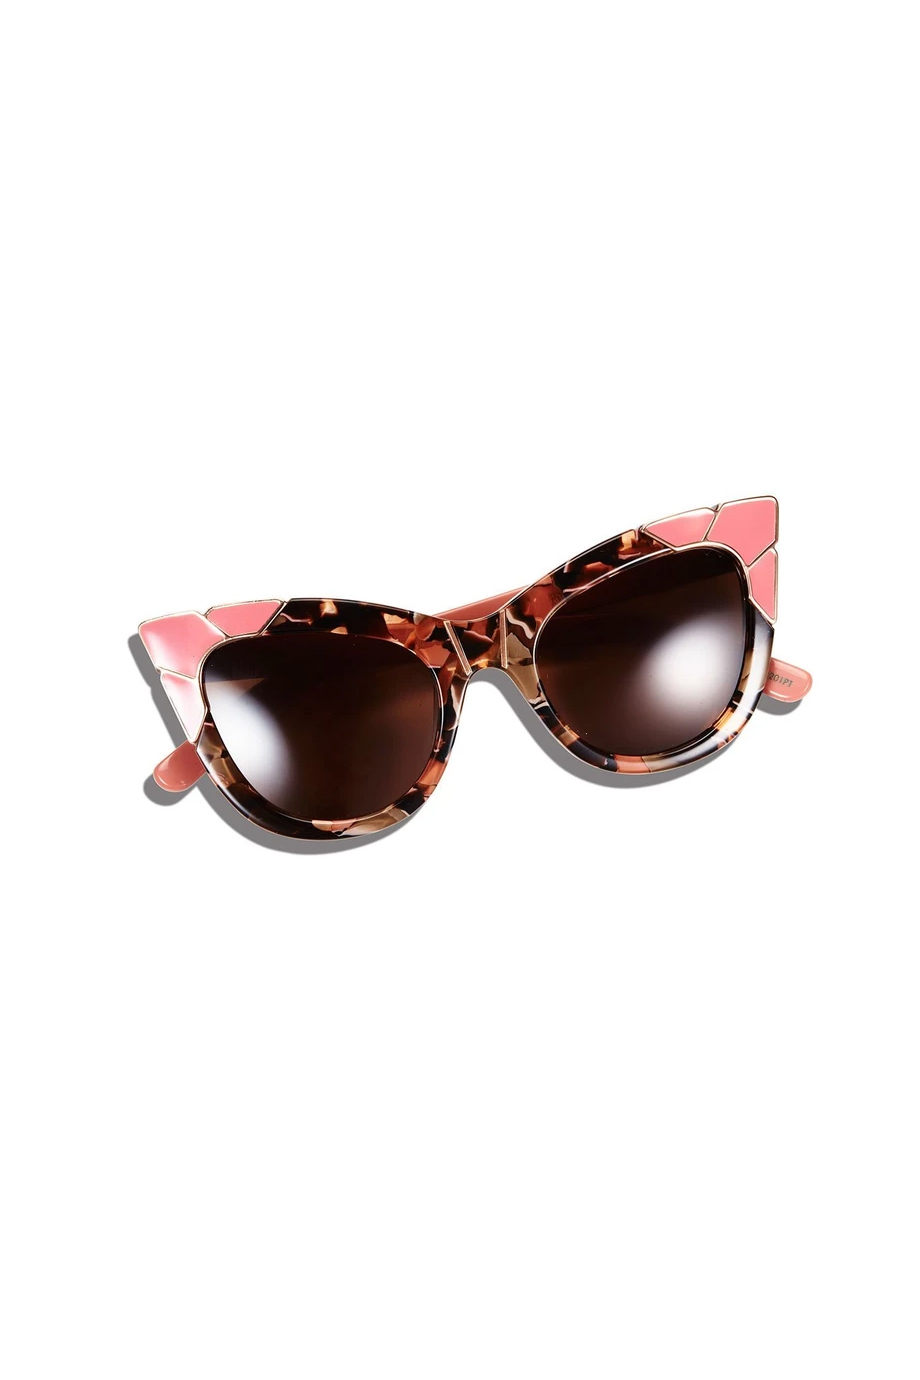 PUSS & BOOTS PINK TORTOISE